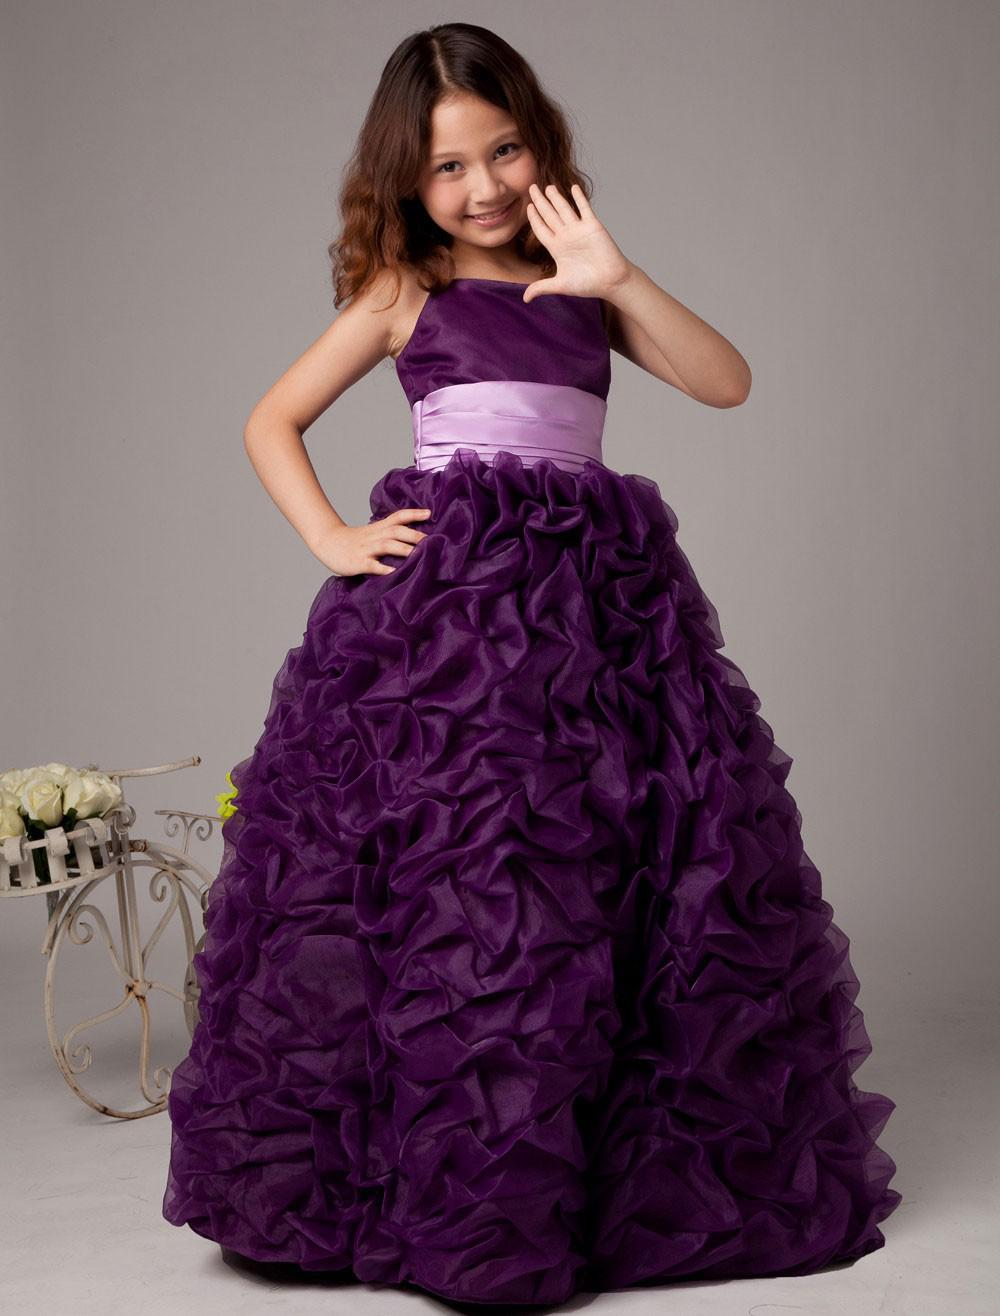 2014 Top Selling Spaghetti Sash Ball Gown Satin Organza Flower Girl Dress evening Gown